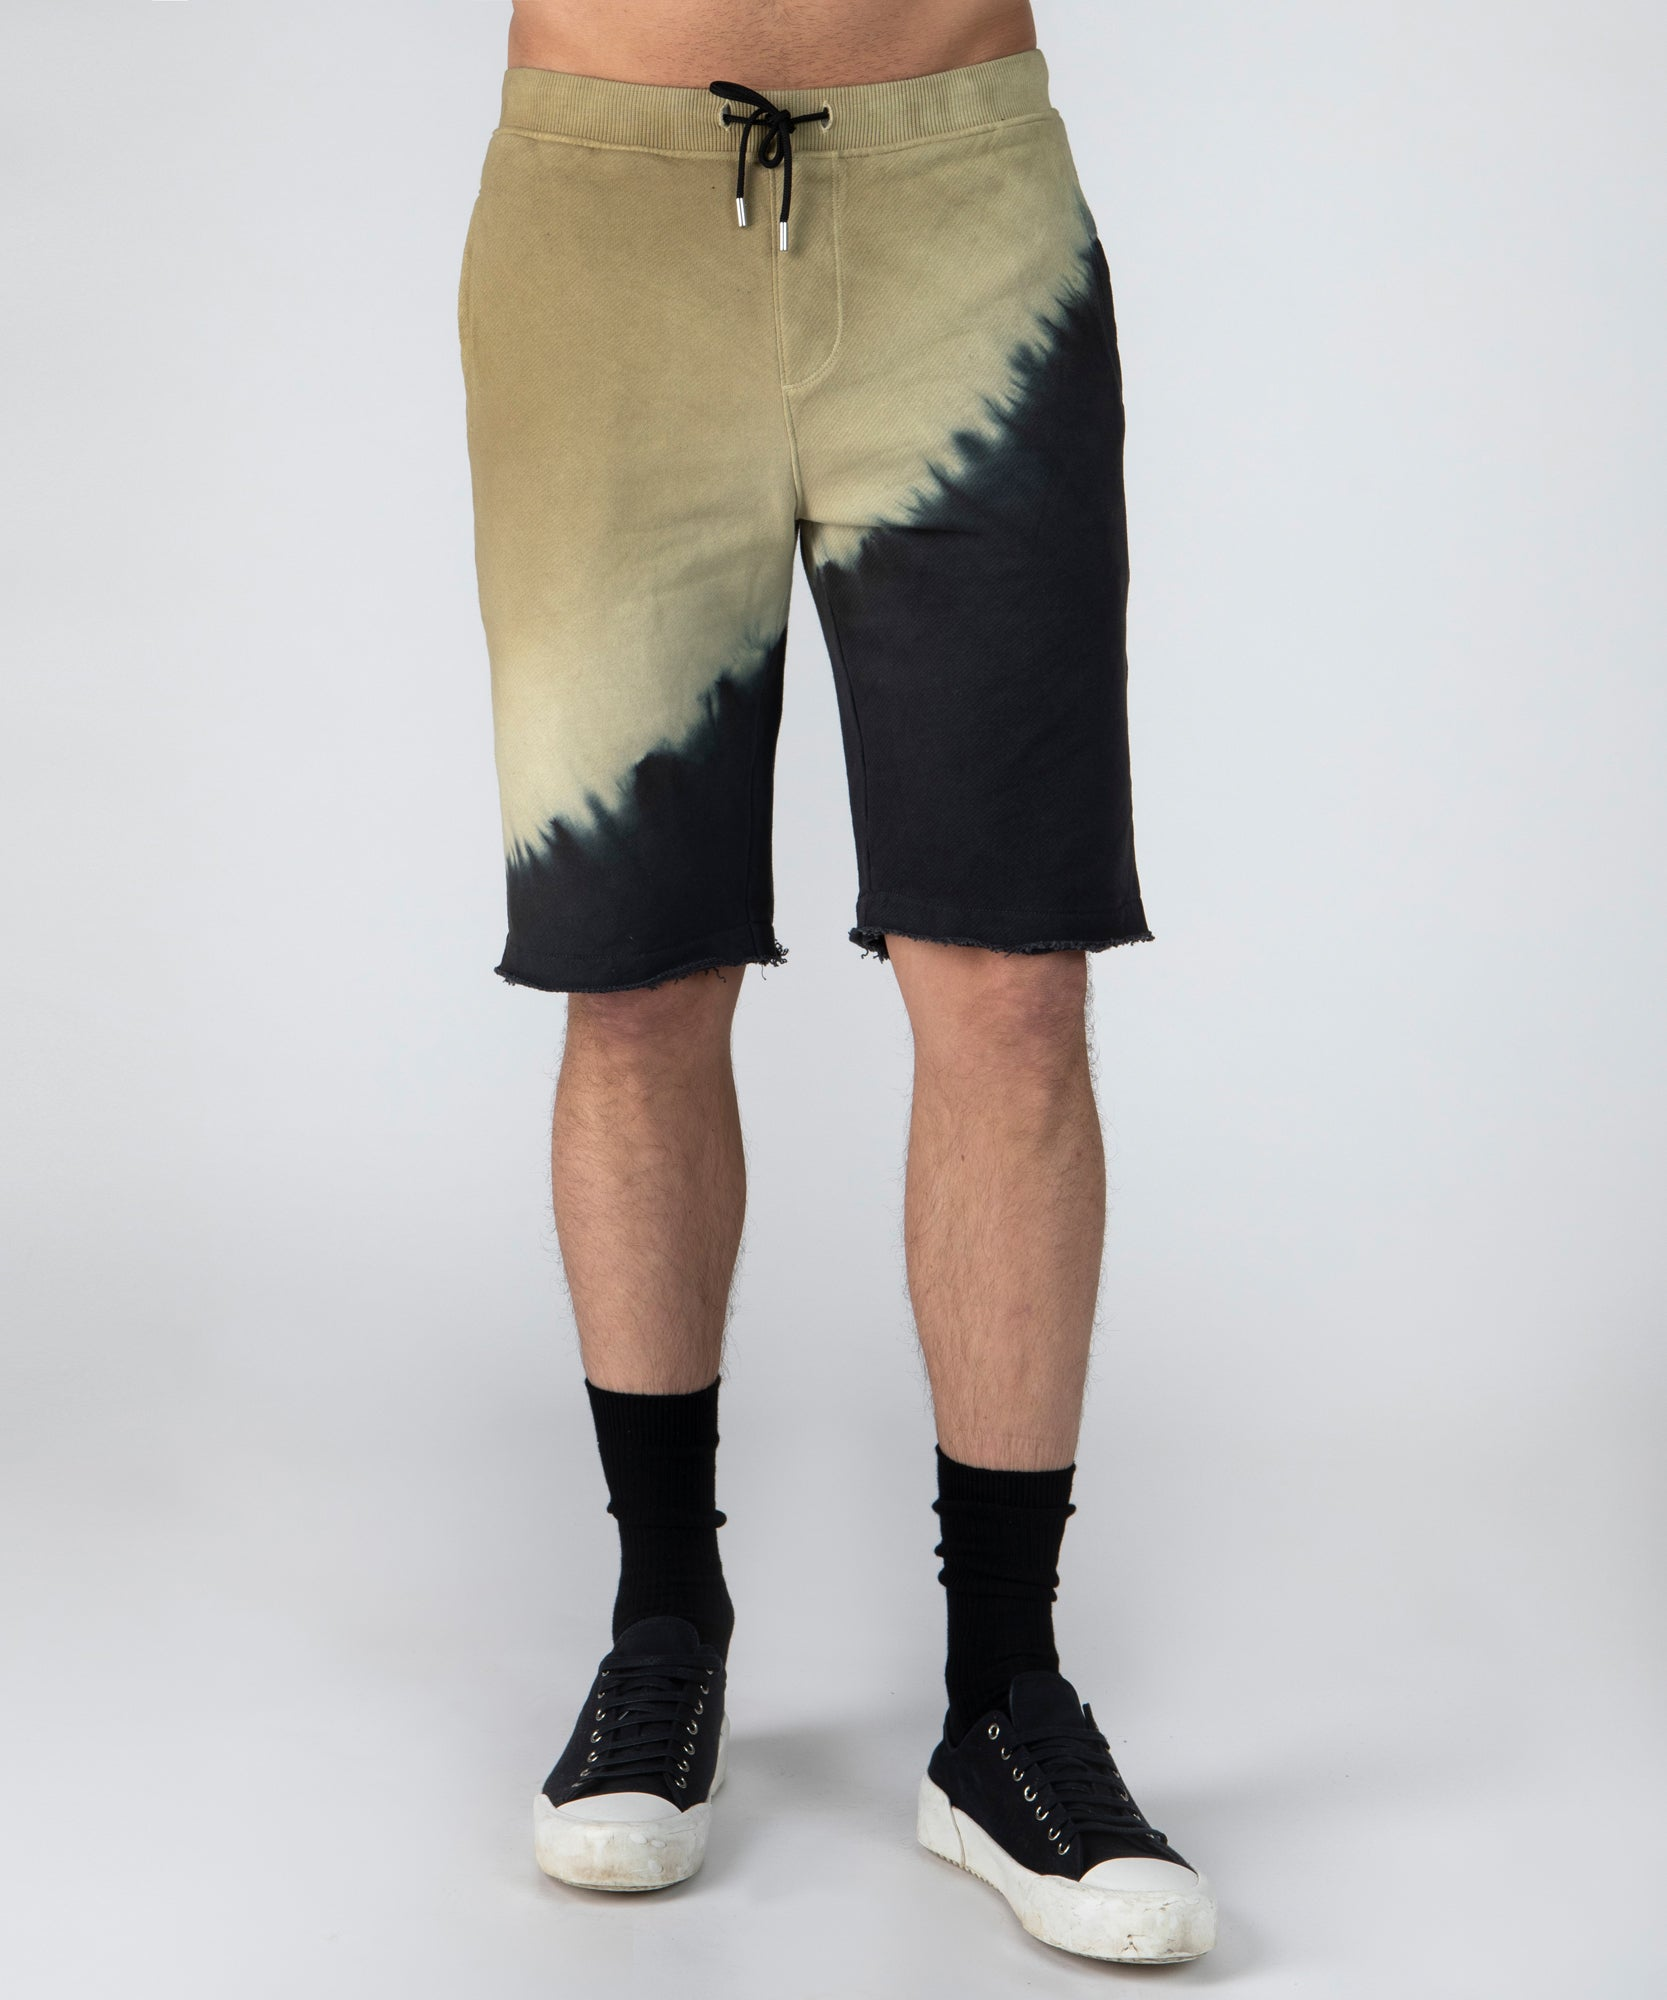 Chartreuse Black Combo French Terry Diagonal Dip Dye Shorts - Men's Luxe Shorts by ATM Anthony Thomas Melillo